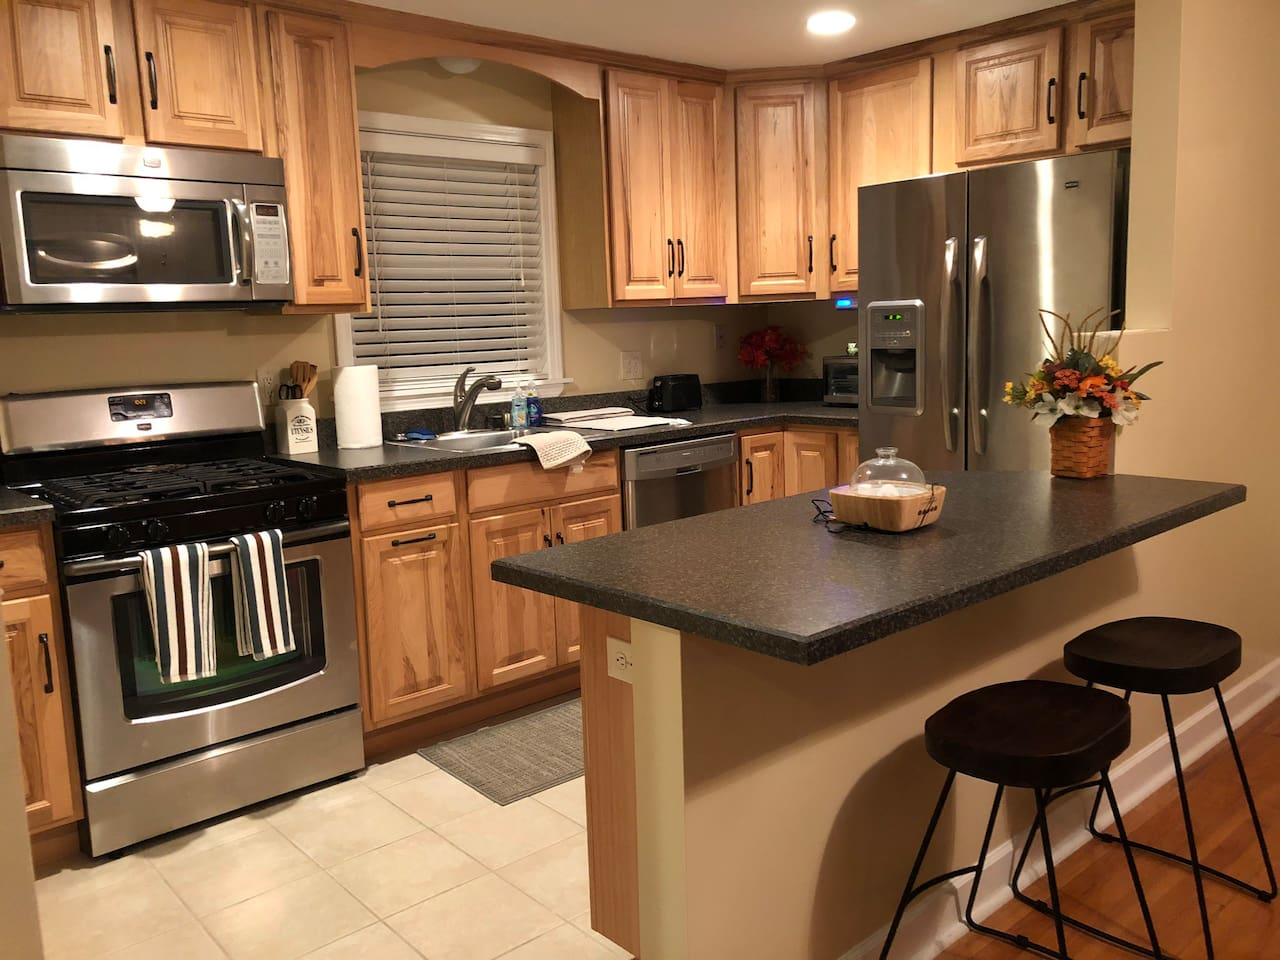 Full kitchen with bar counter top